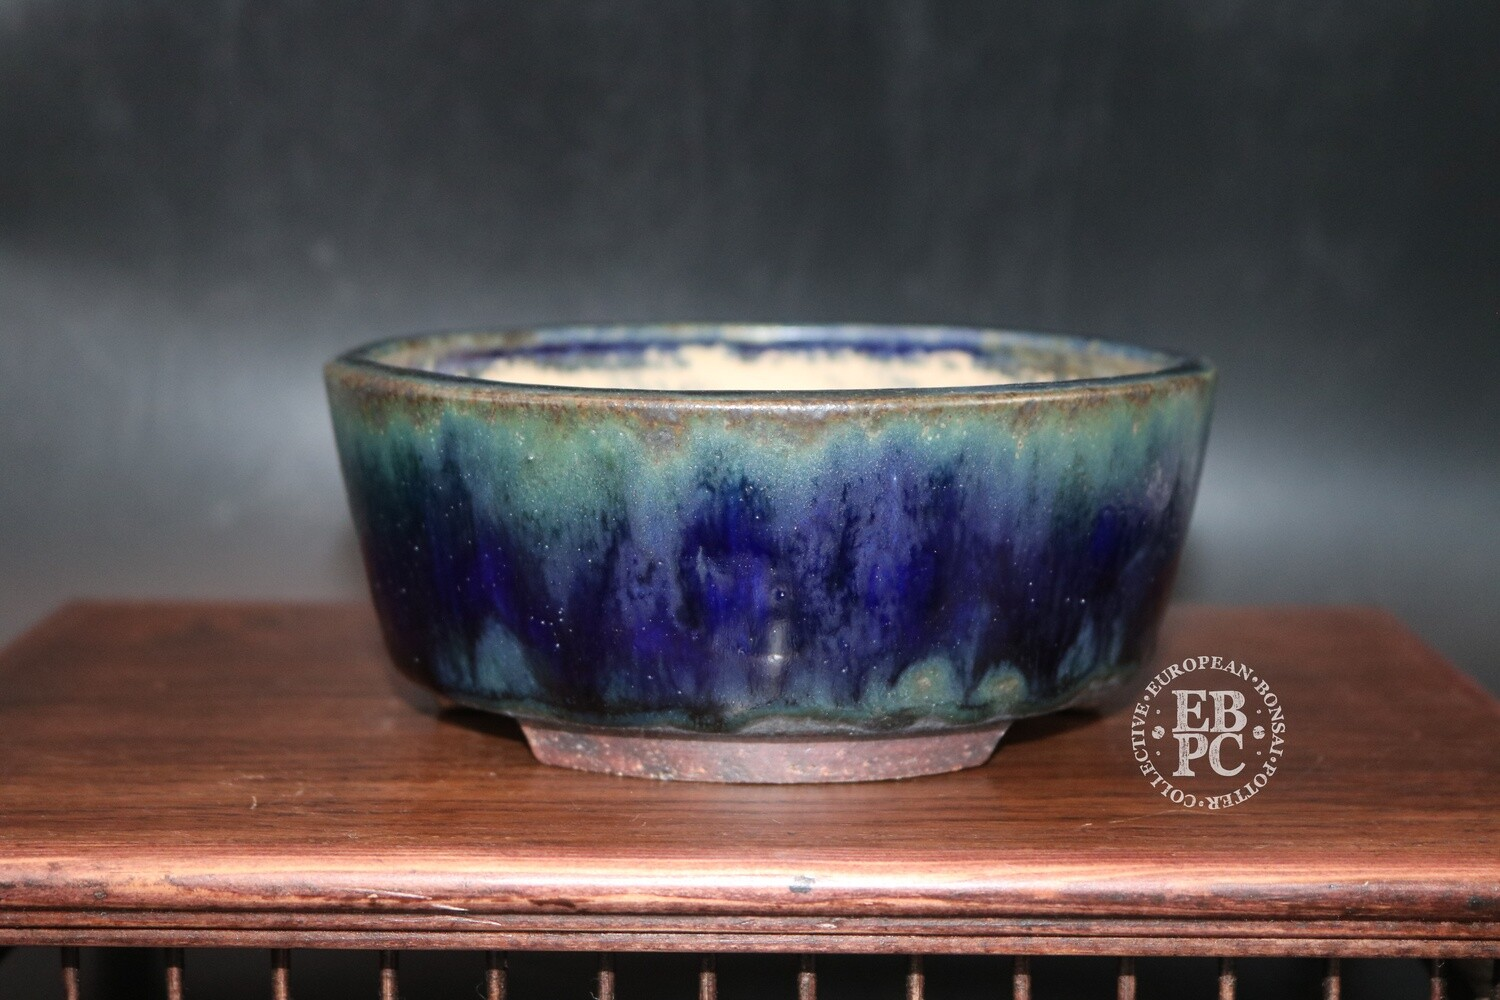 Ian Baillie - 14.8cm; Glazed; Round; Striking glaze; Blue; Ruri; Greens; Brown; Recessed feet;